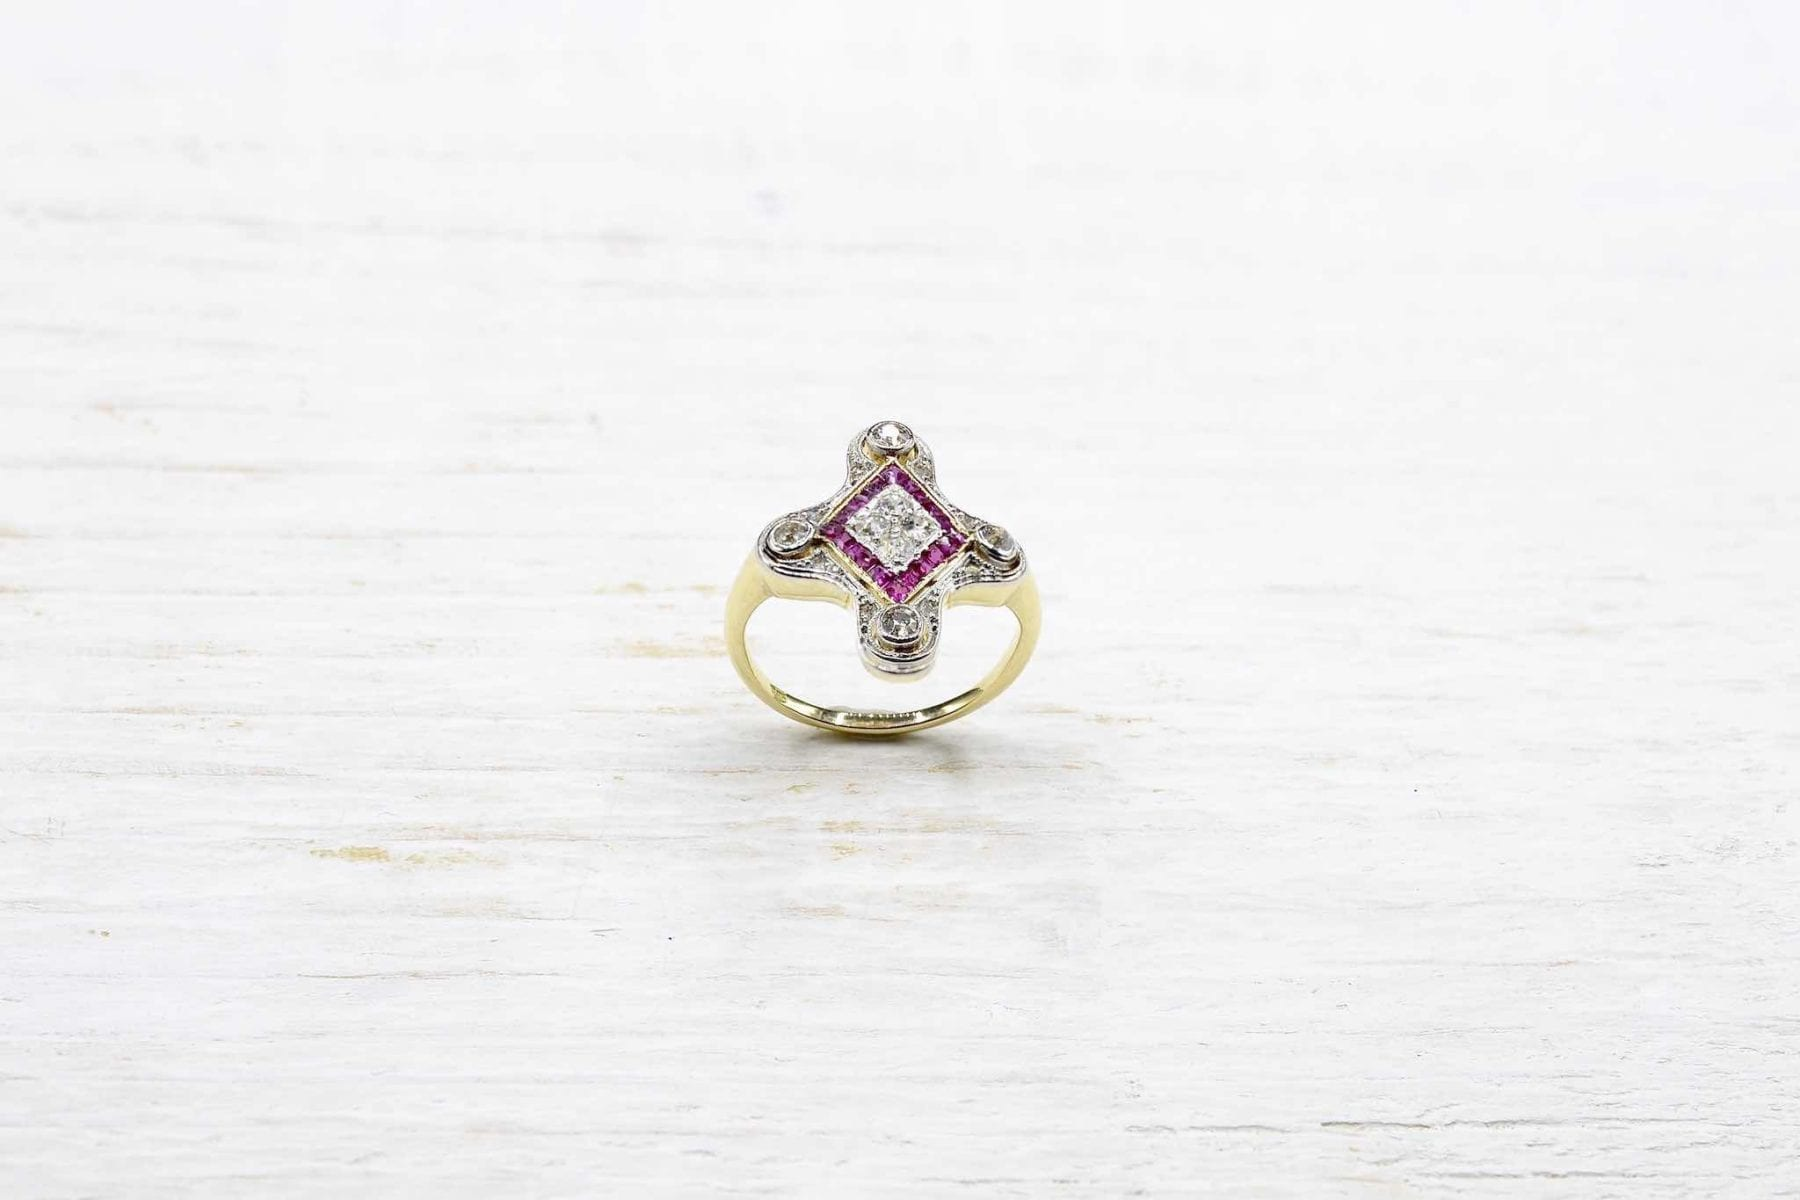 bague vintage art-déco rubis diamants